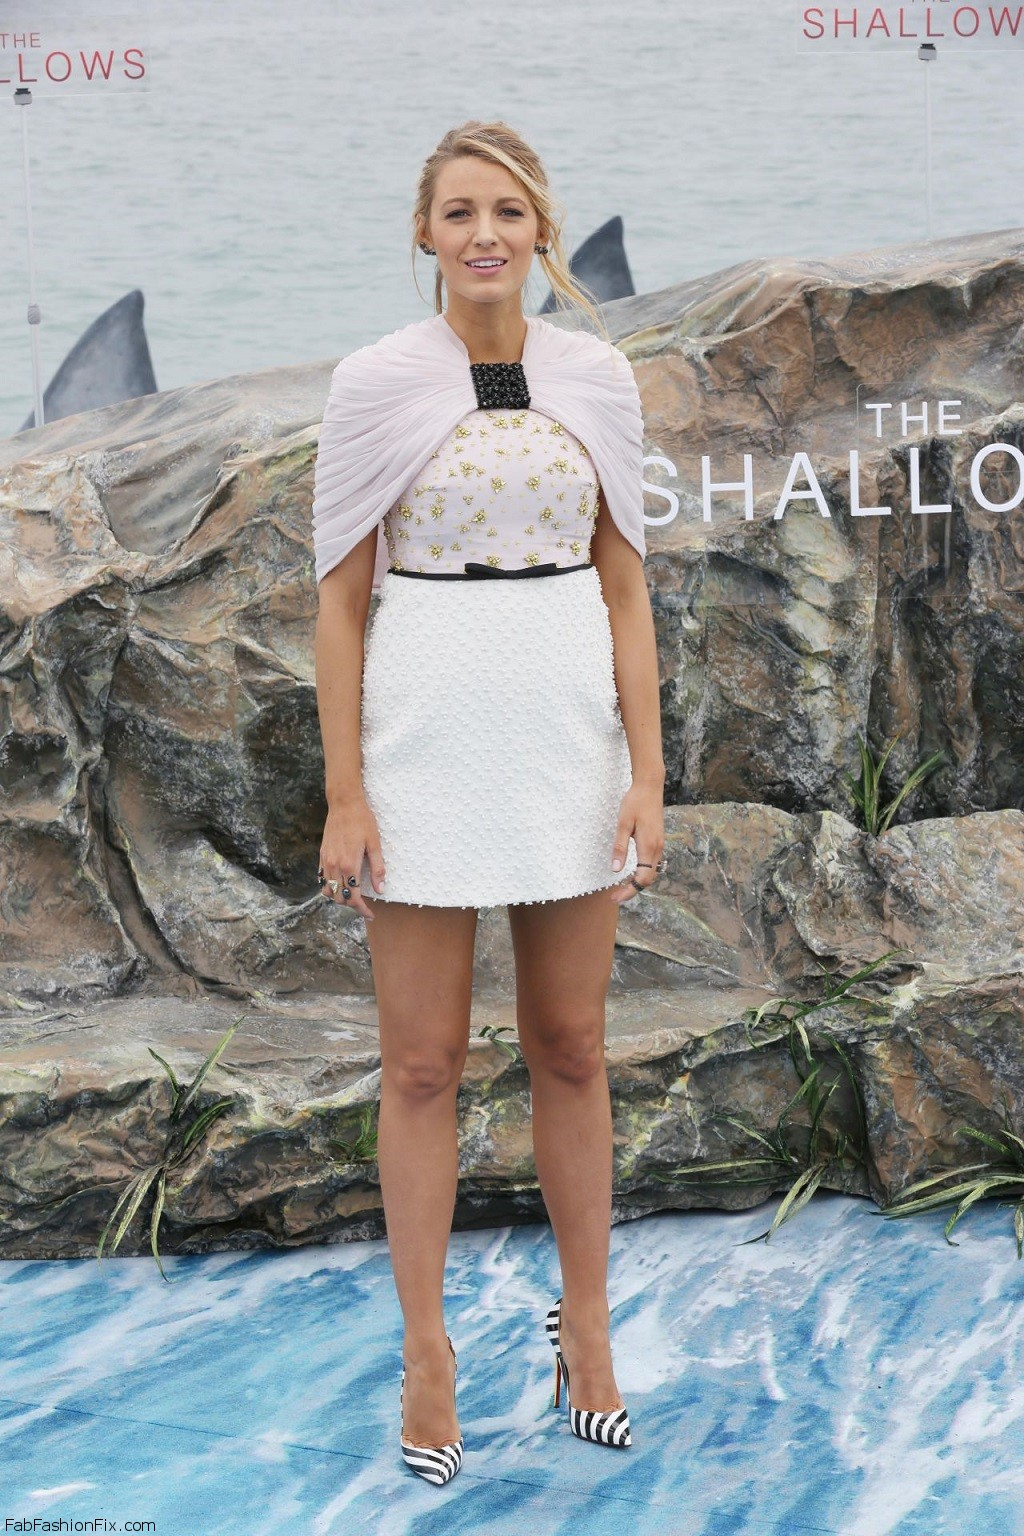 blake-lively-the-shallows-photocall-cannes-film-festival-5-13-2016-9